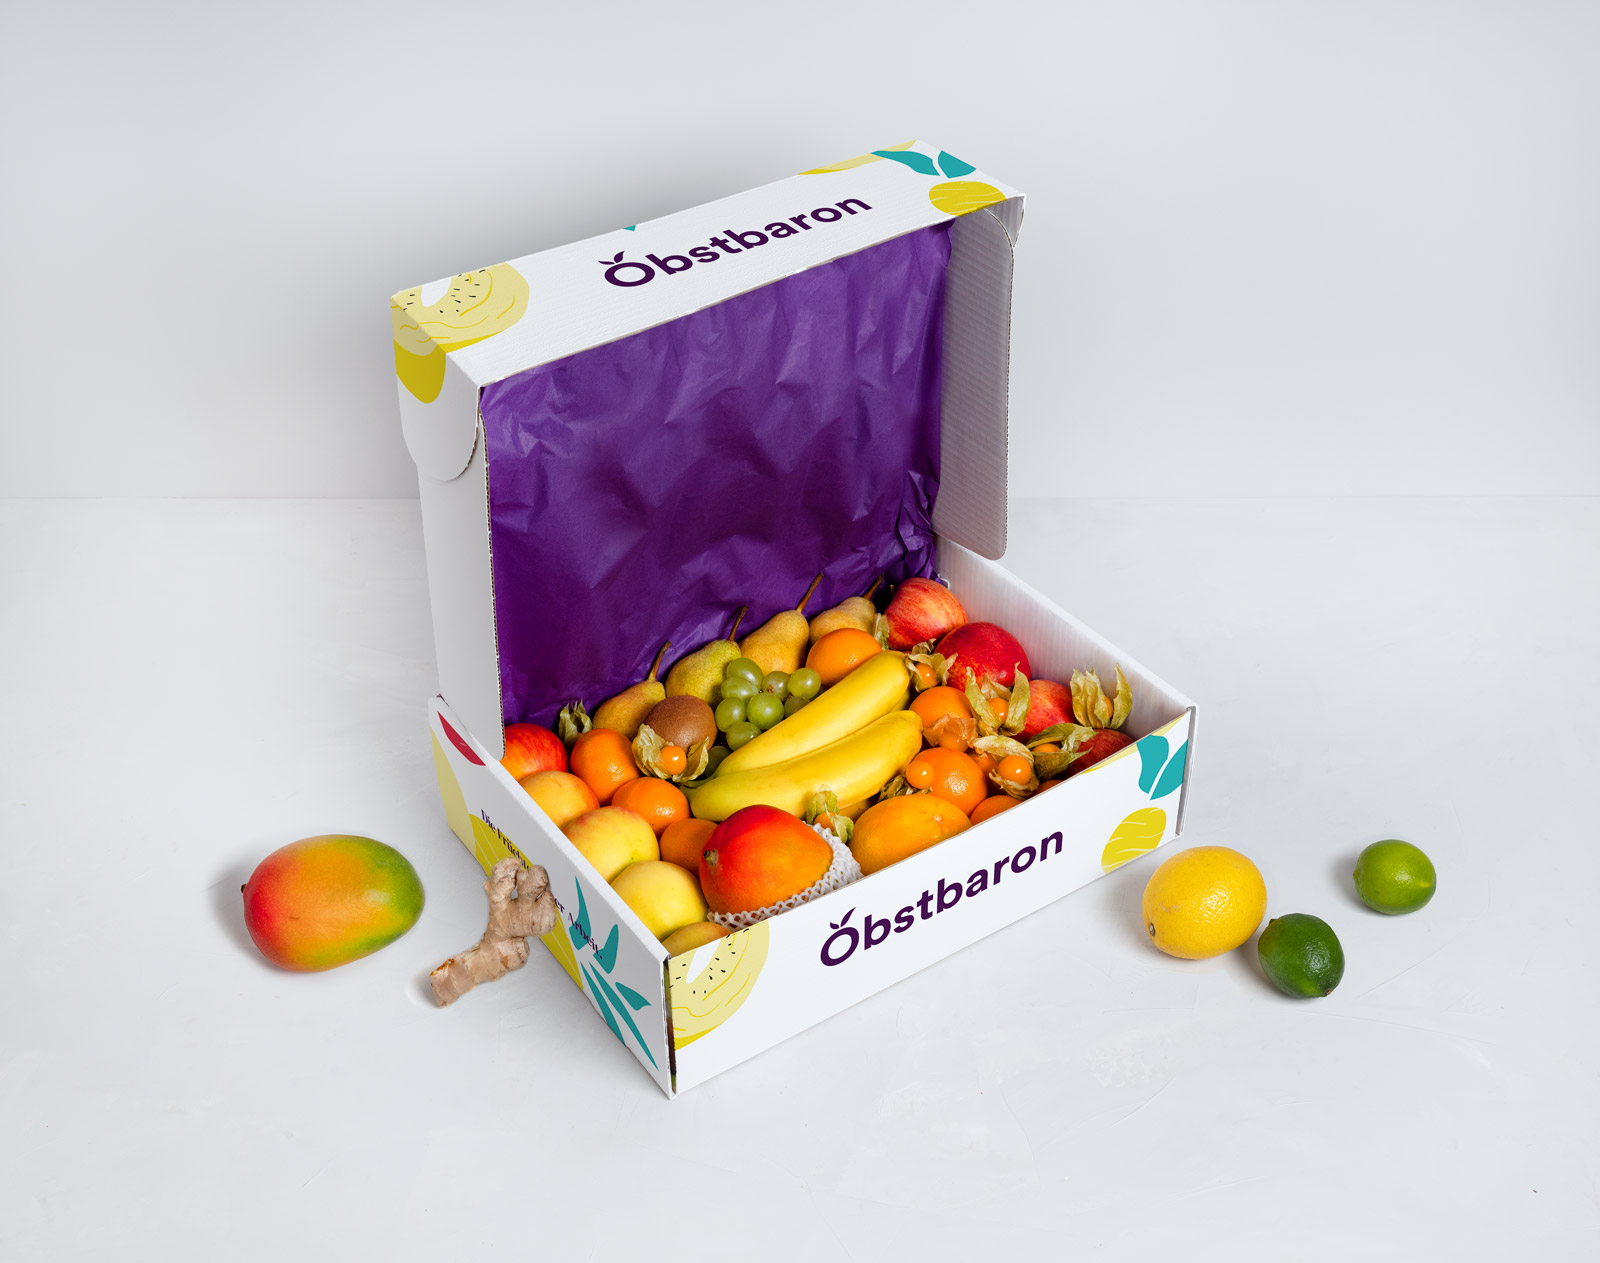 obstbox-bestellen-fuers-gesunde-buero_obstbox